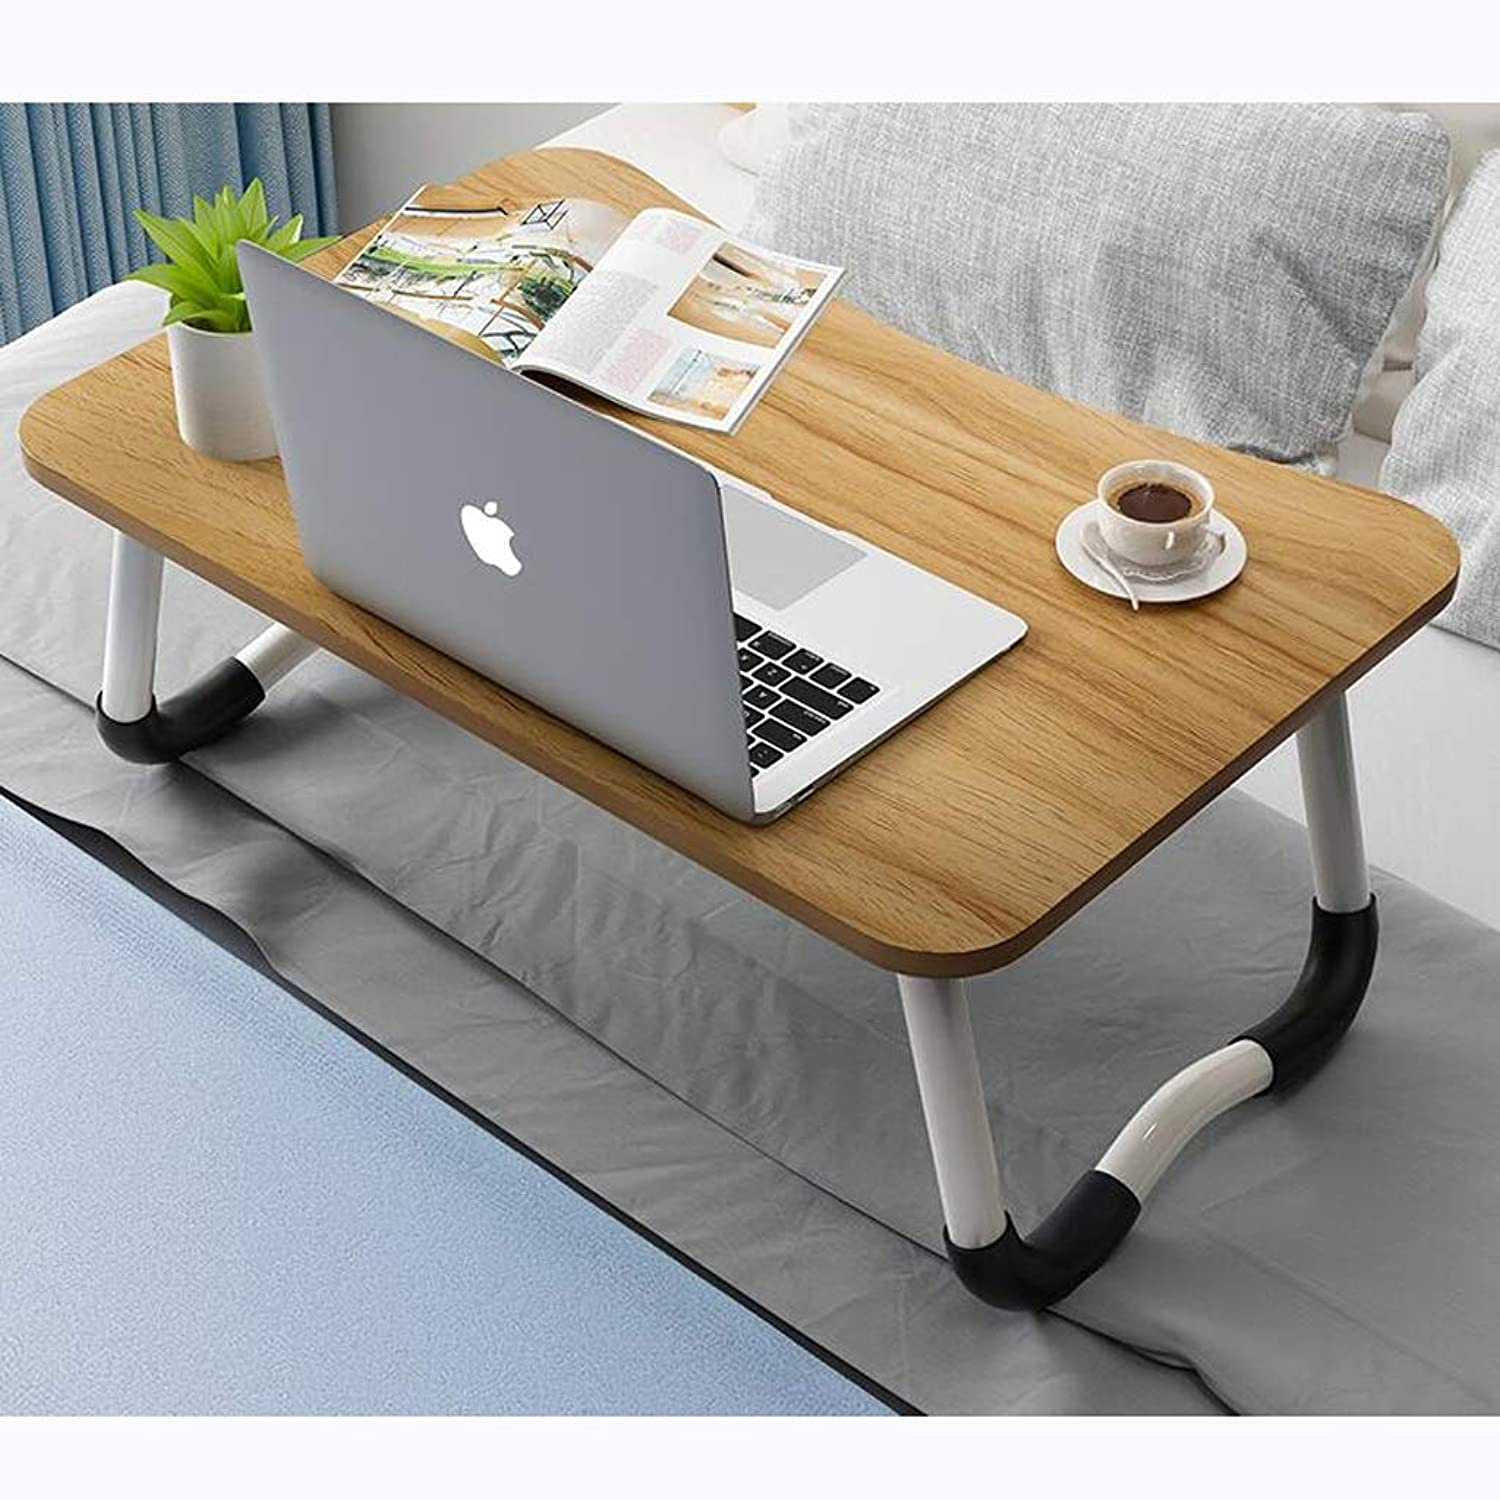 JSFQ Folding Table Laptop Table Bed Foldable Table Bed Desk Lazy Table Folding Table (color   E)